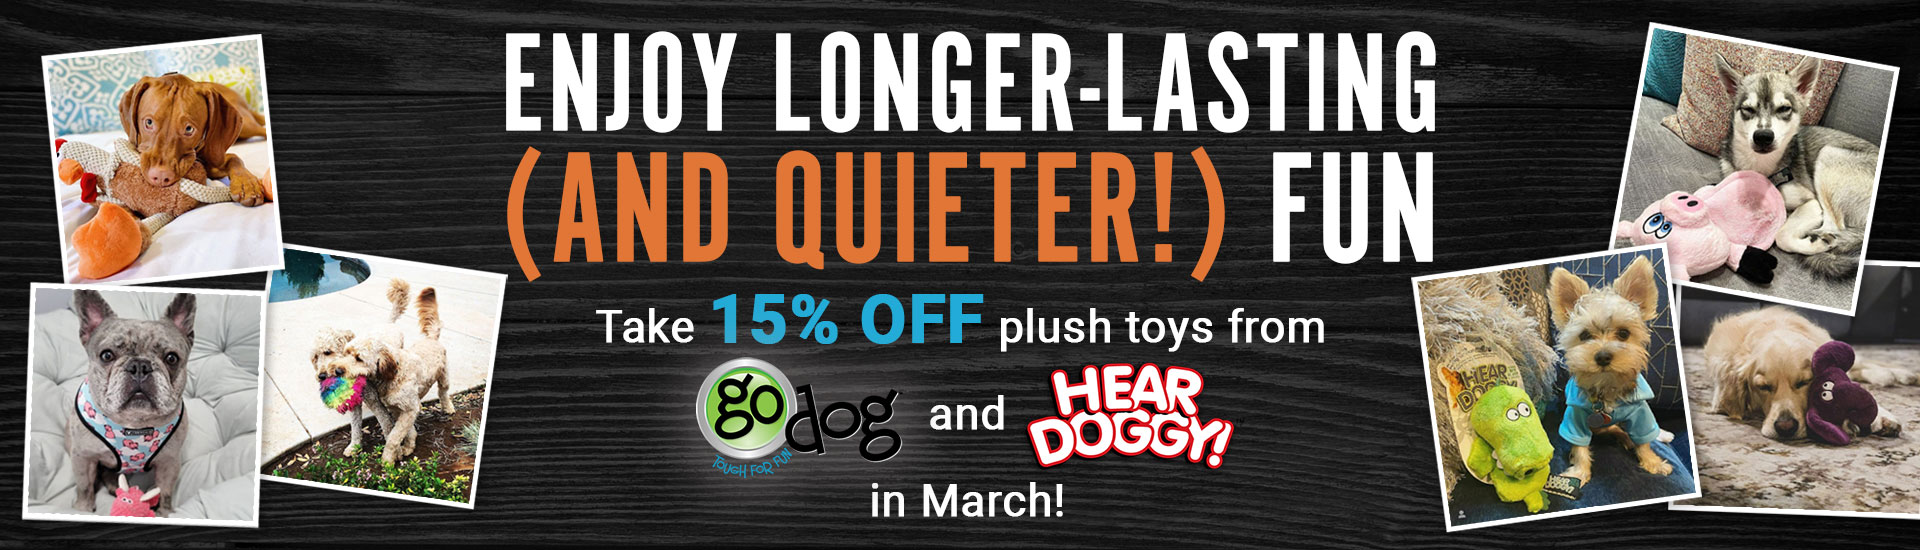 Enjoy longer-lasting and quieter fun with 15% off plush from GoDog and HearDoggy in March